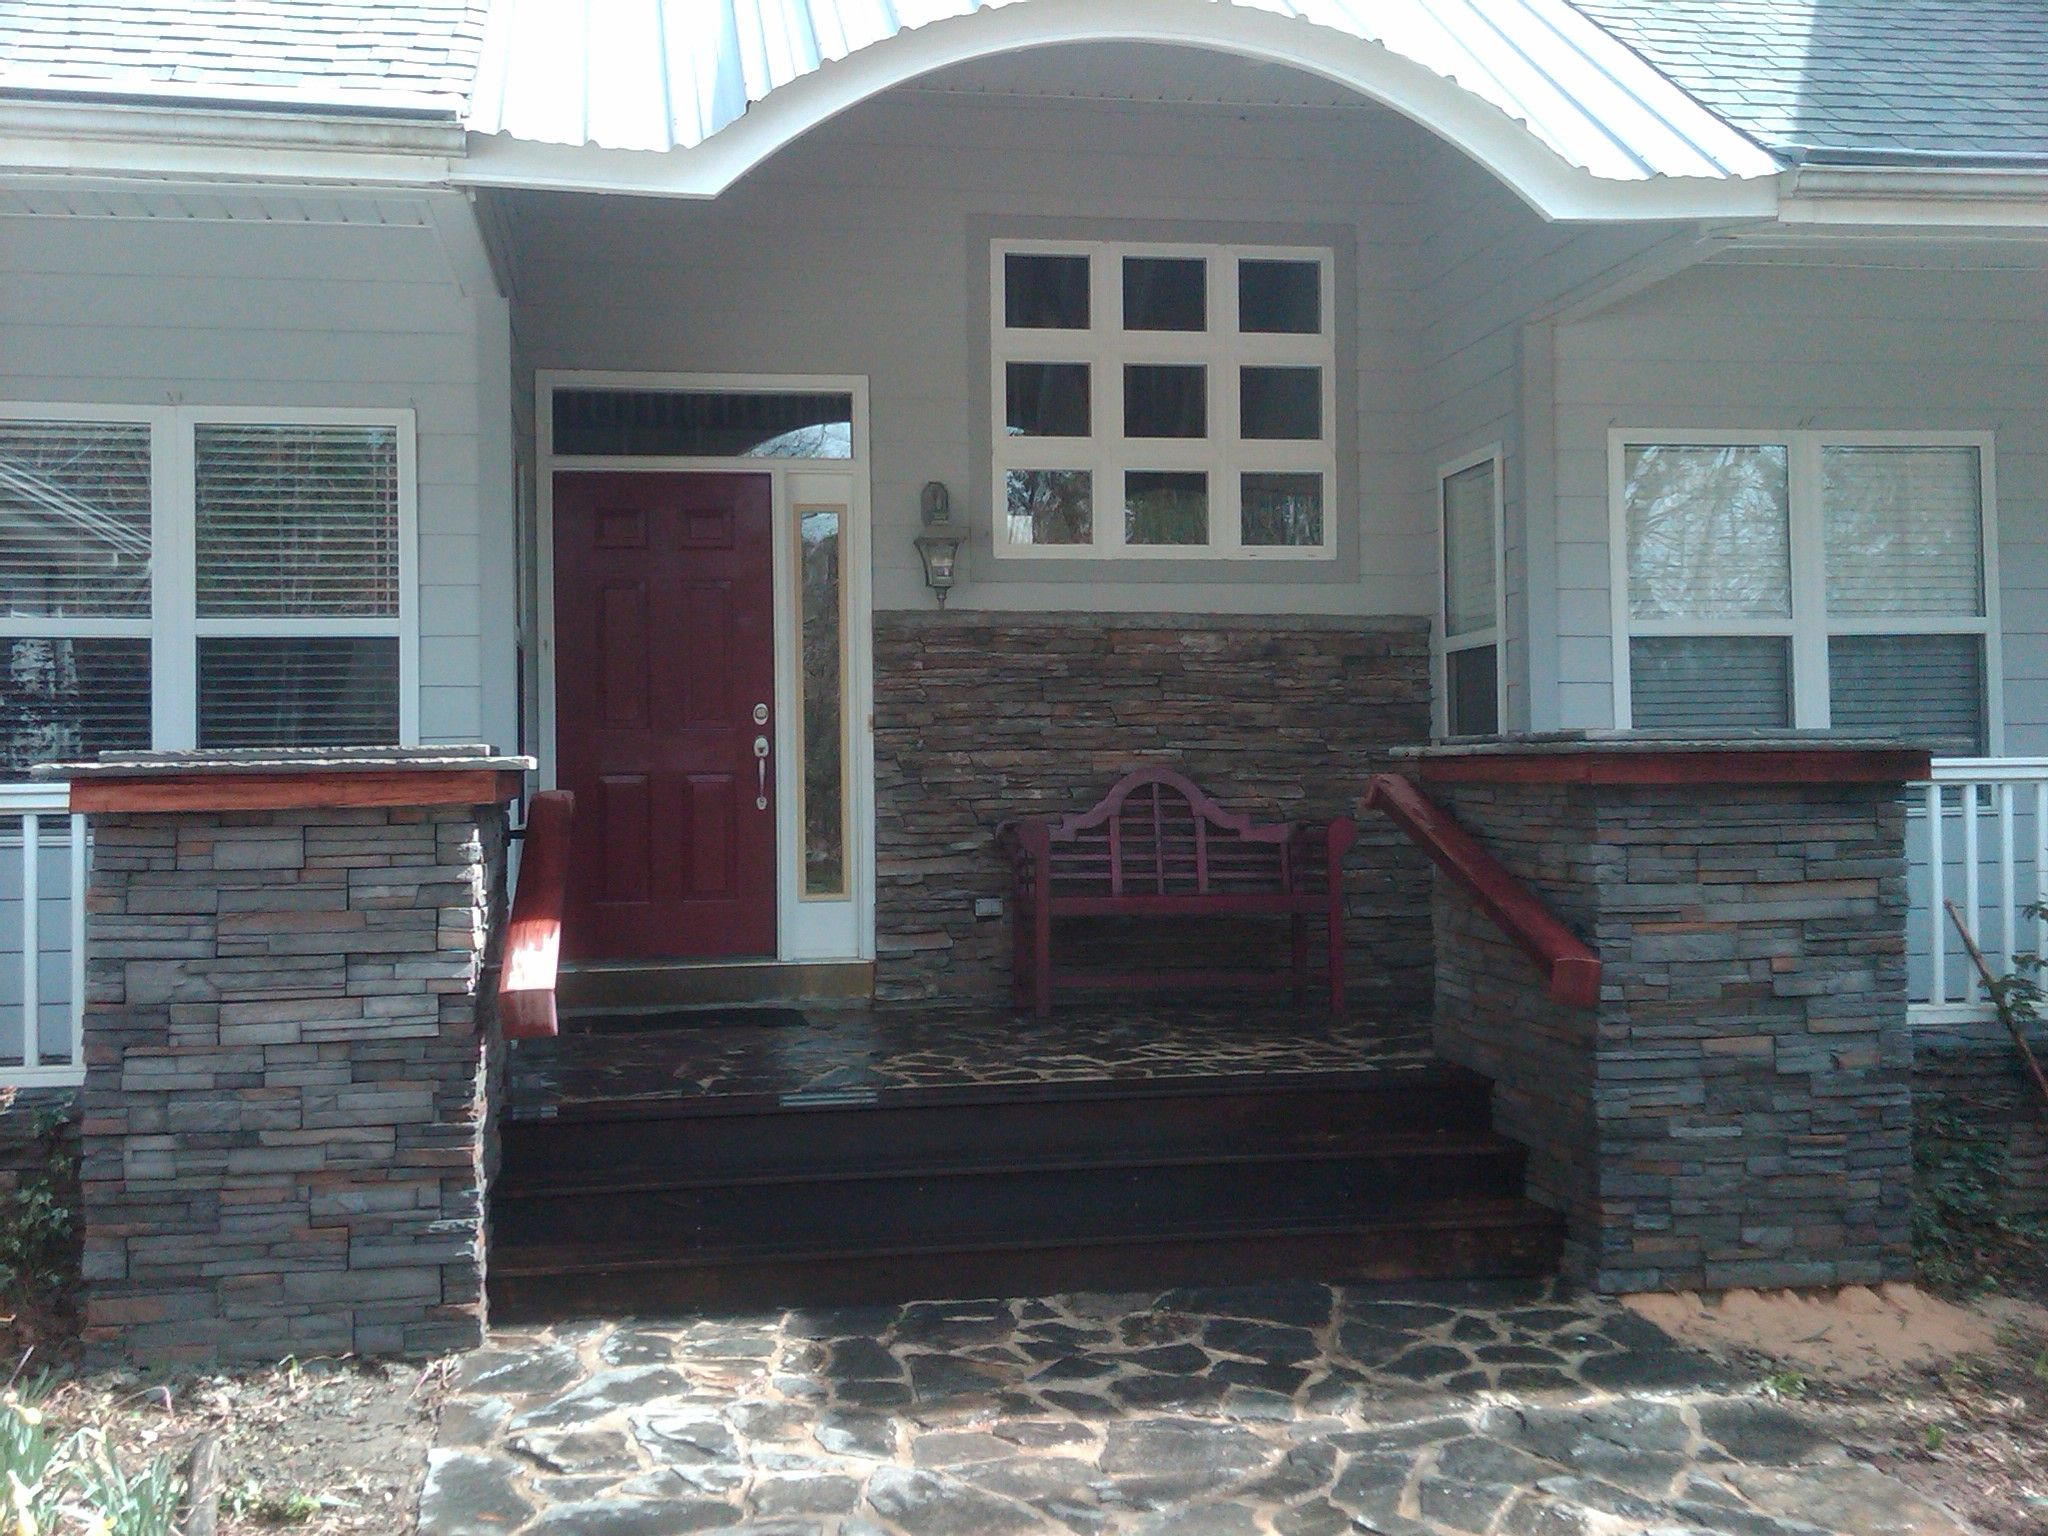 Best Front Entrance With Curved Roof And Stack Pillars Garage 400 x 300